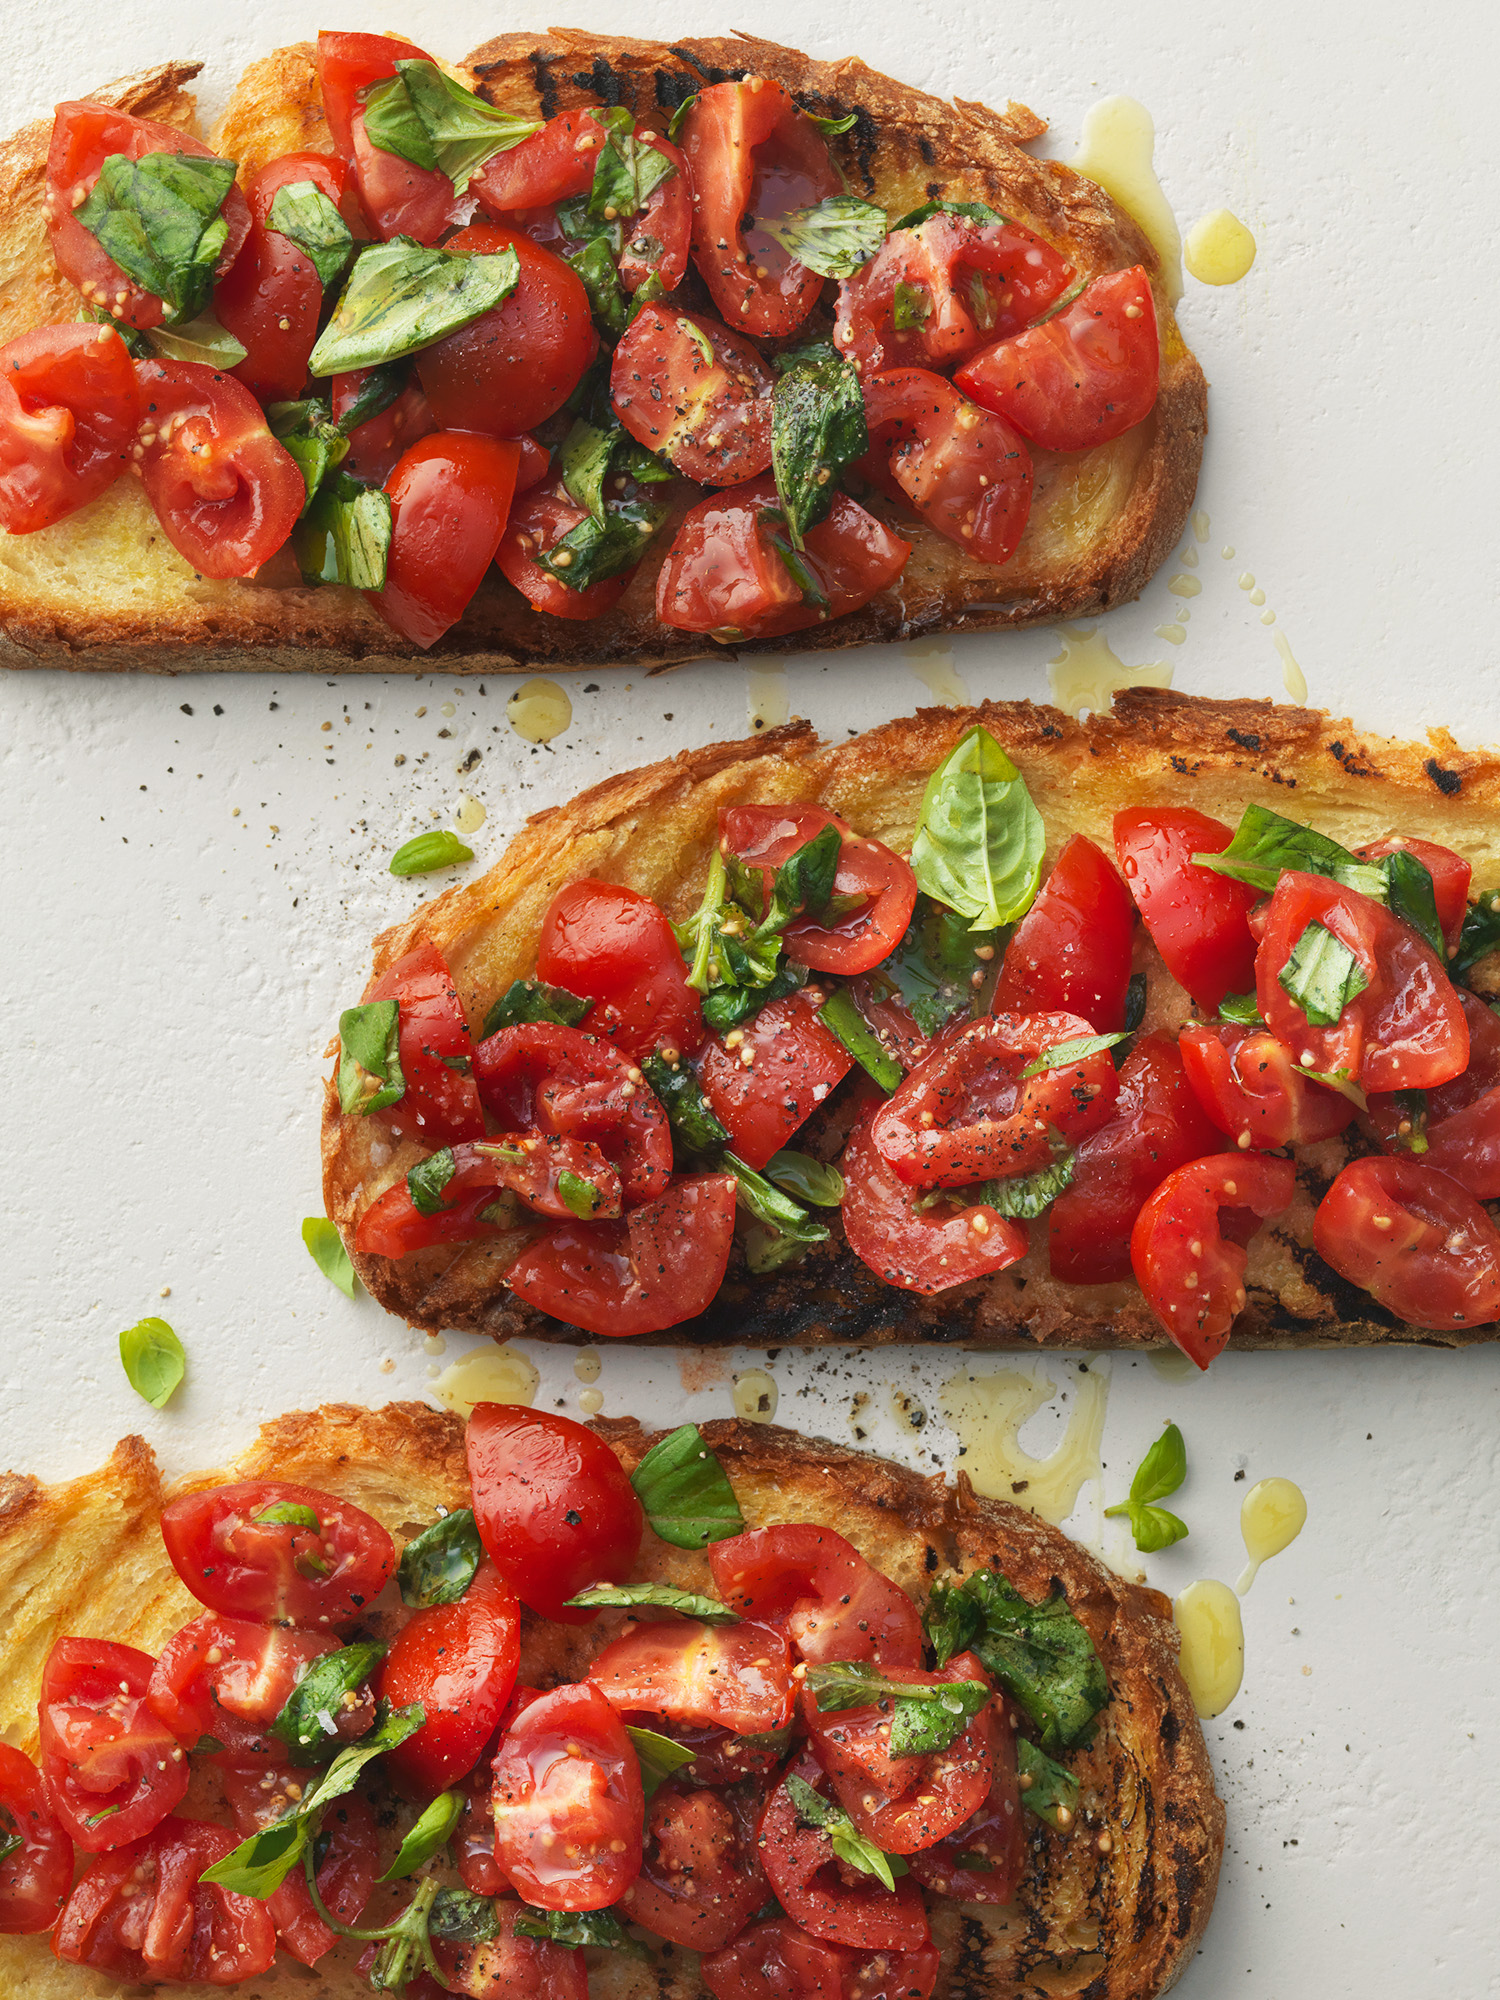 WAITROSE_BestCustomer_Summer_18.6.18_Bruschetta - 055.jpg